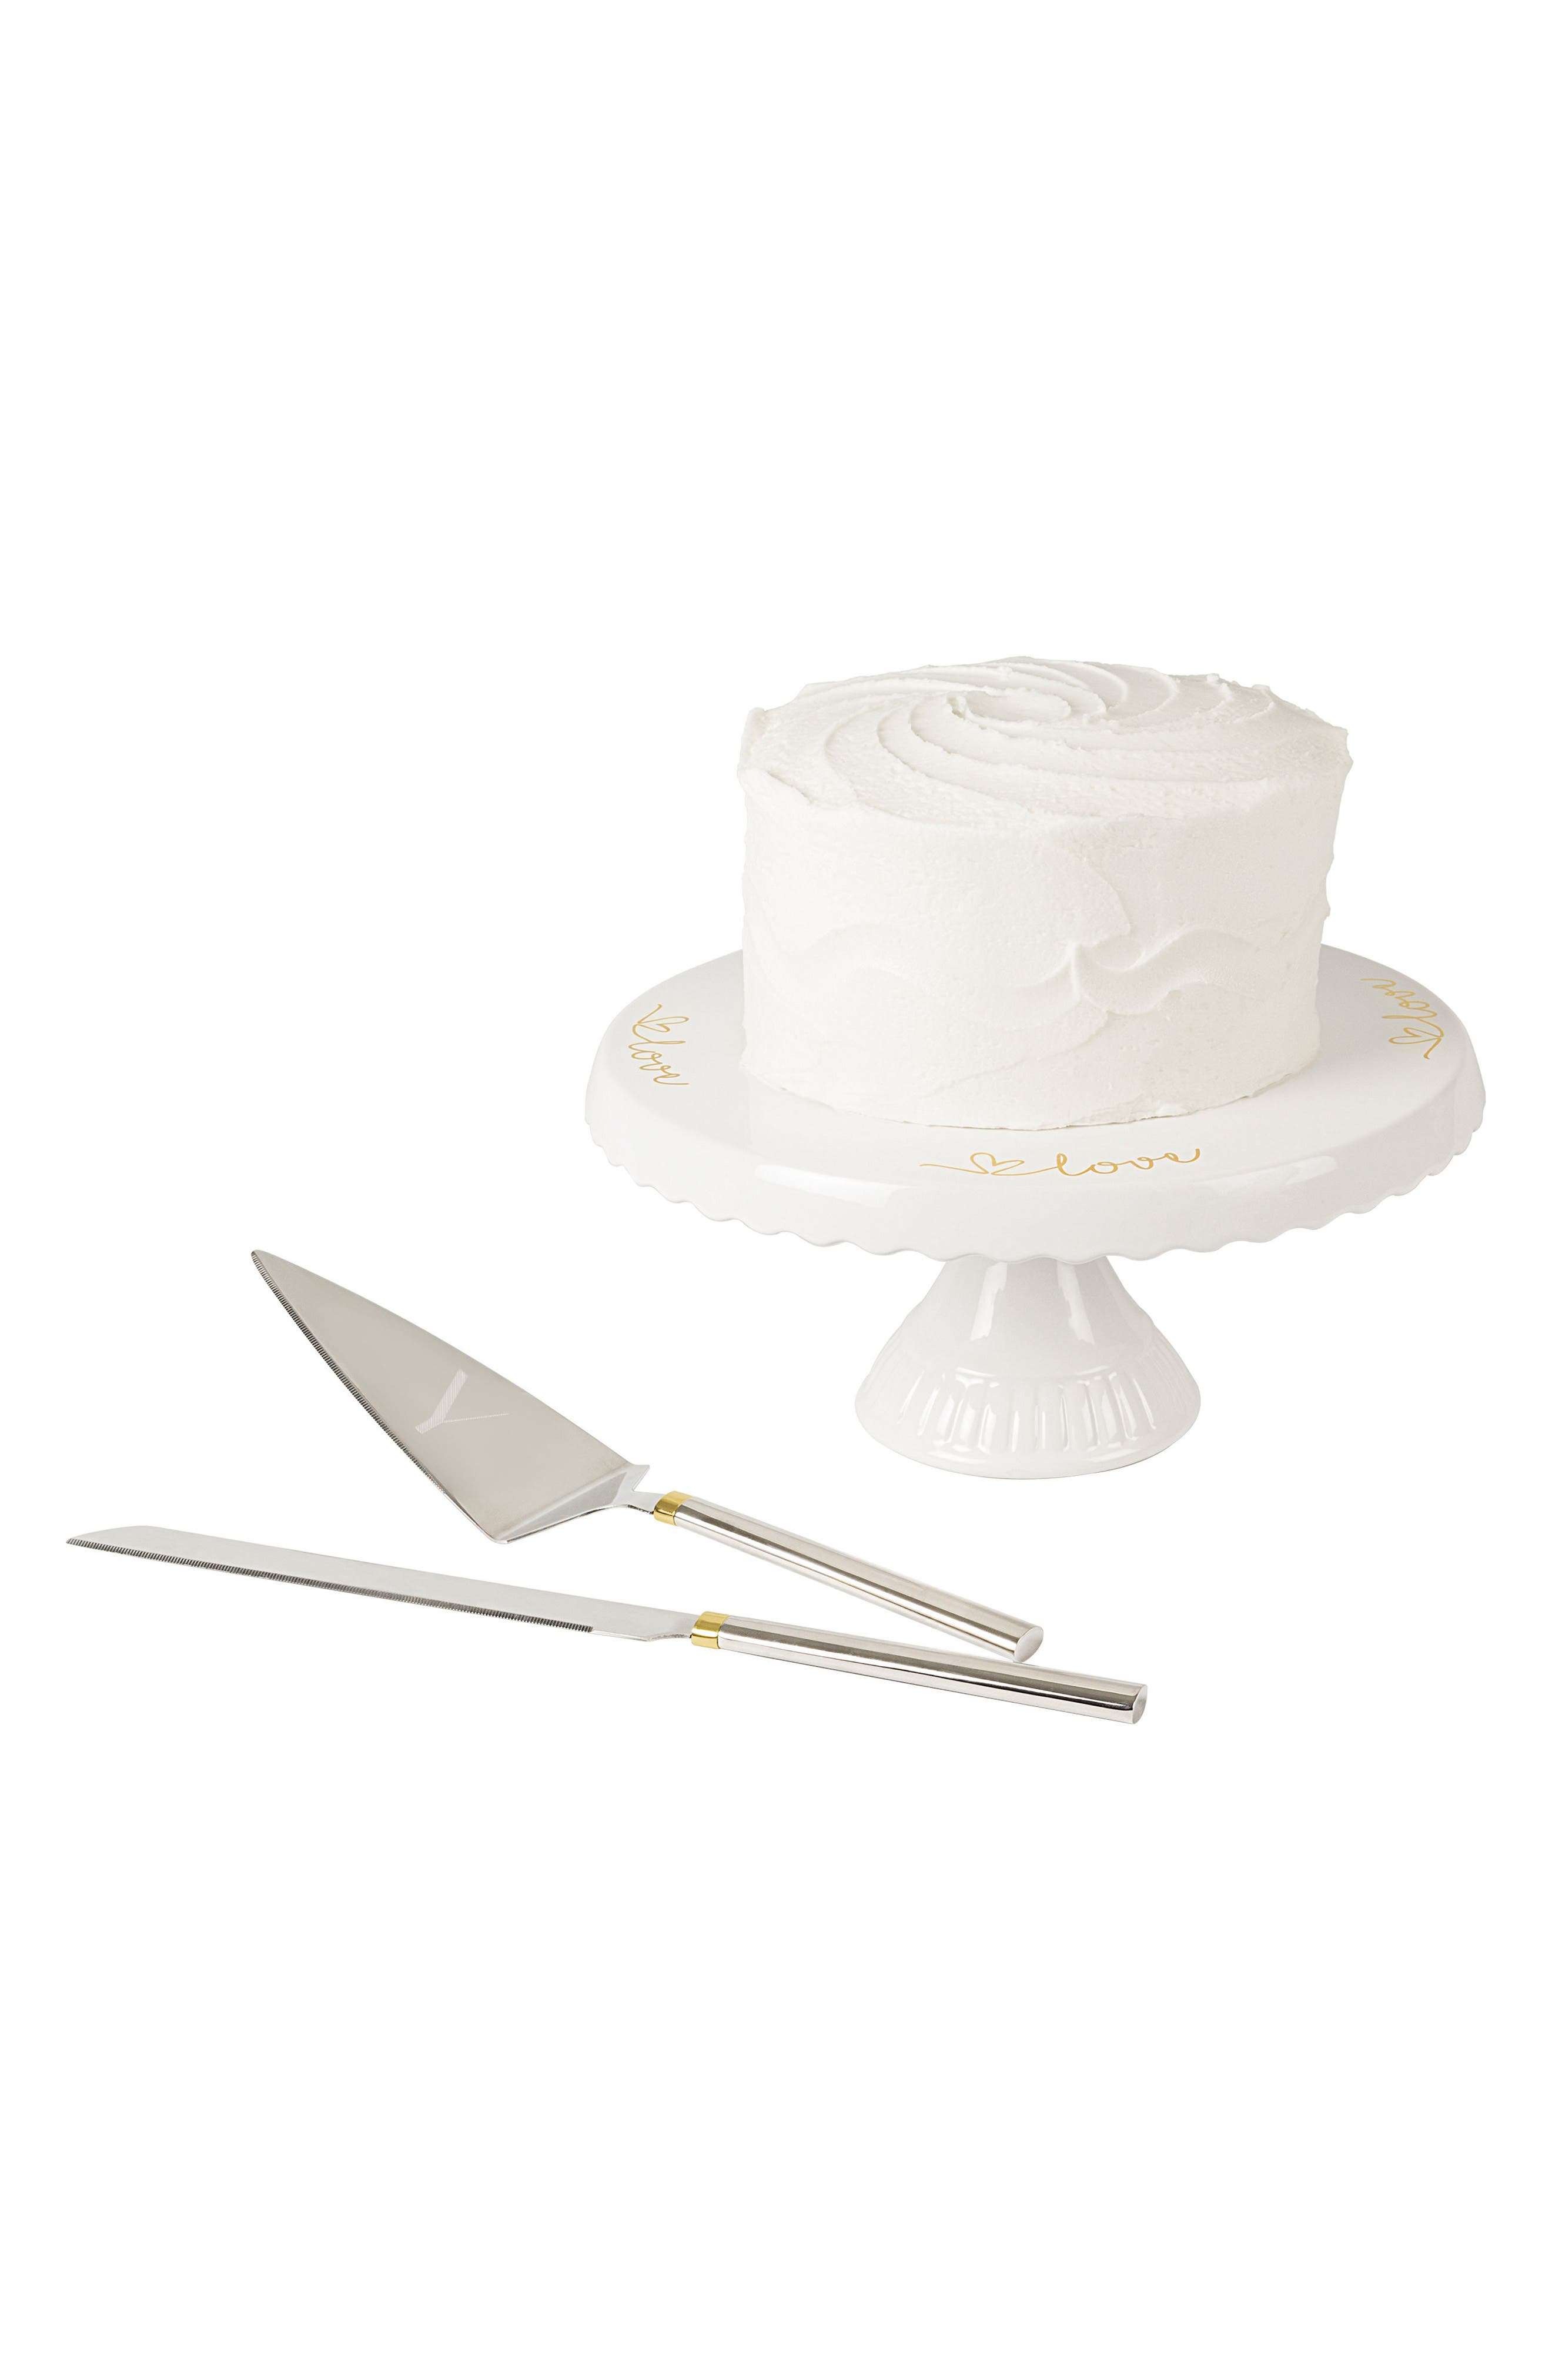 Love Monogram Cake Stand & Server Set,                             Main thumbnail 26, color,